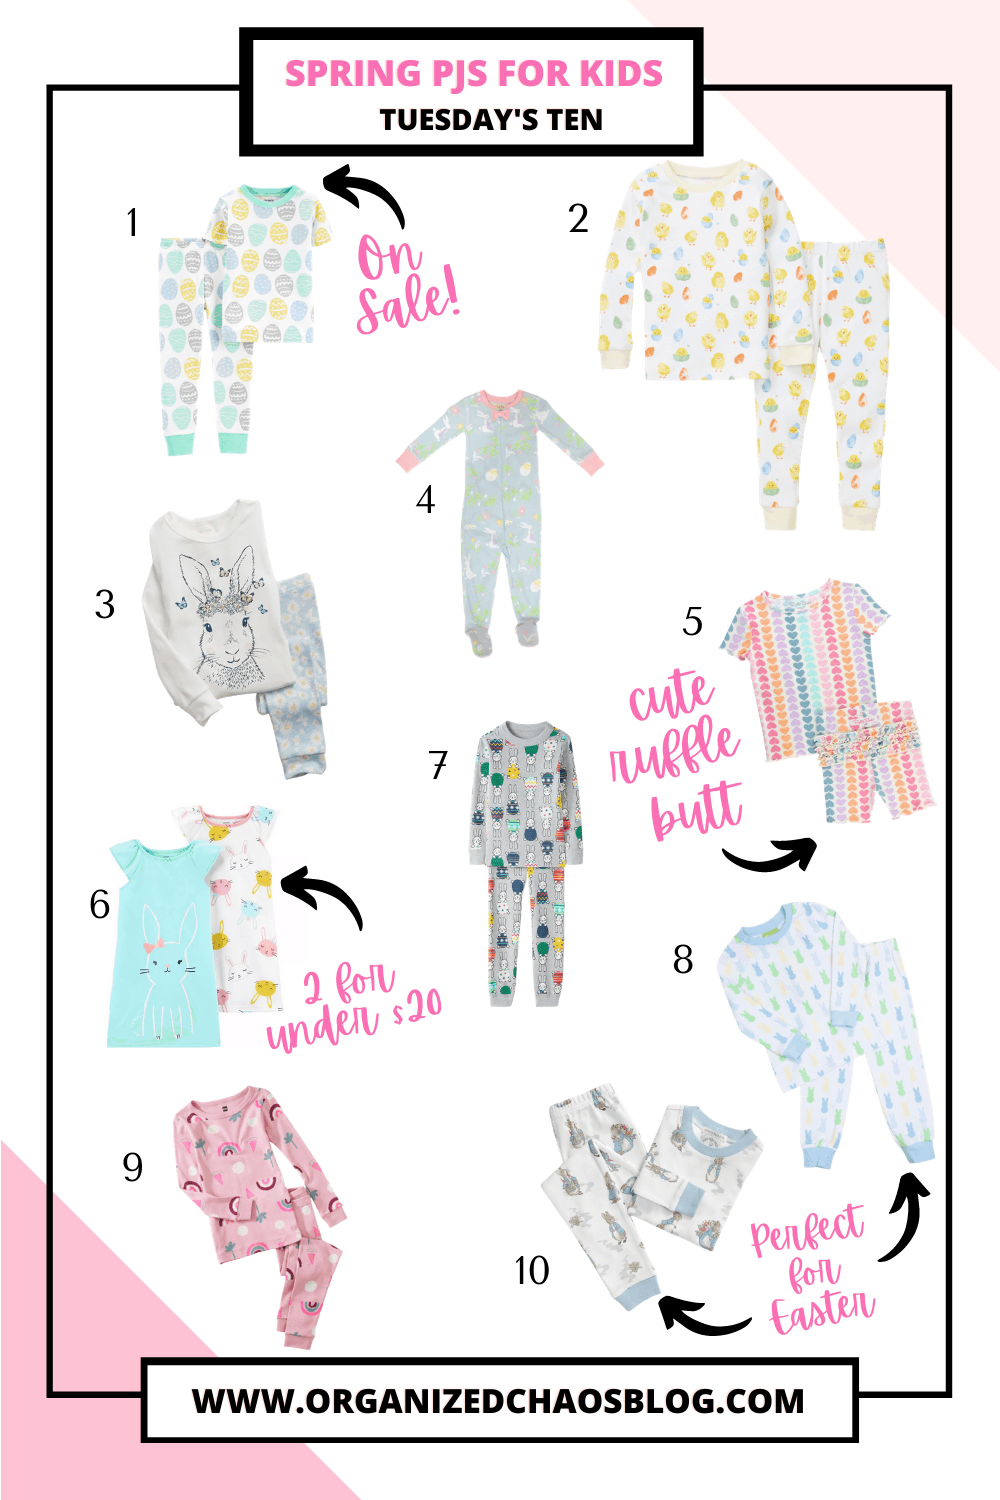 Spring PJs for Toddlers | Tuesday's Ten